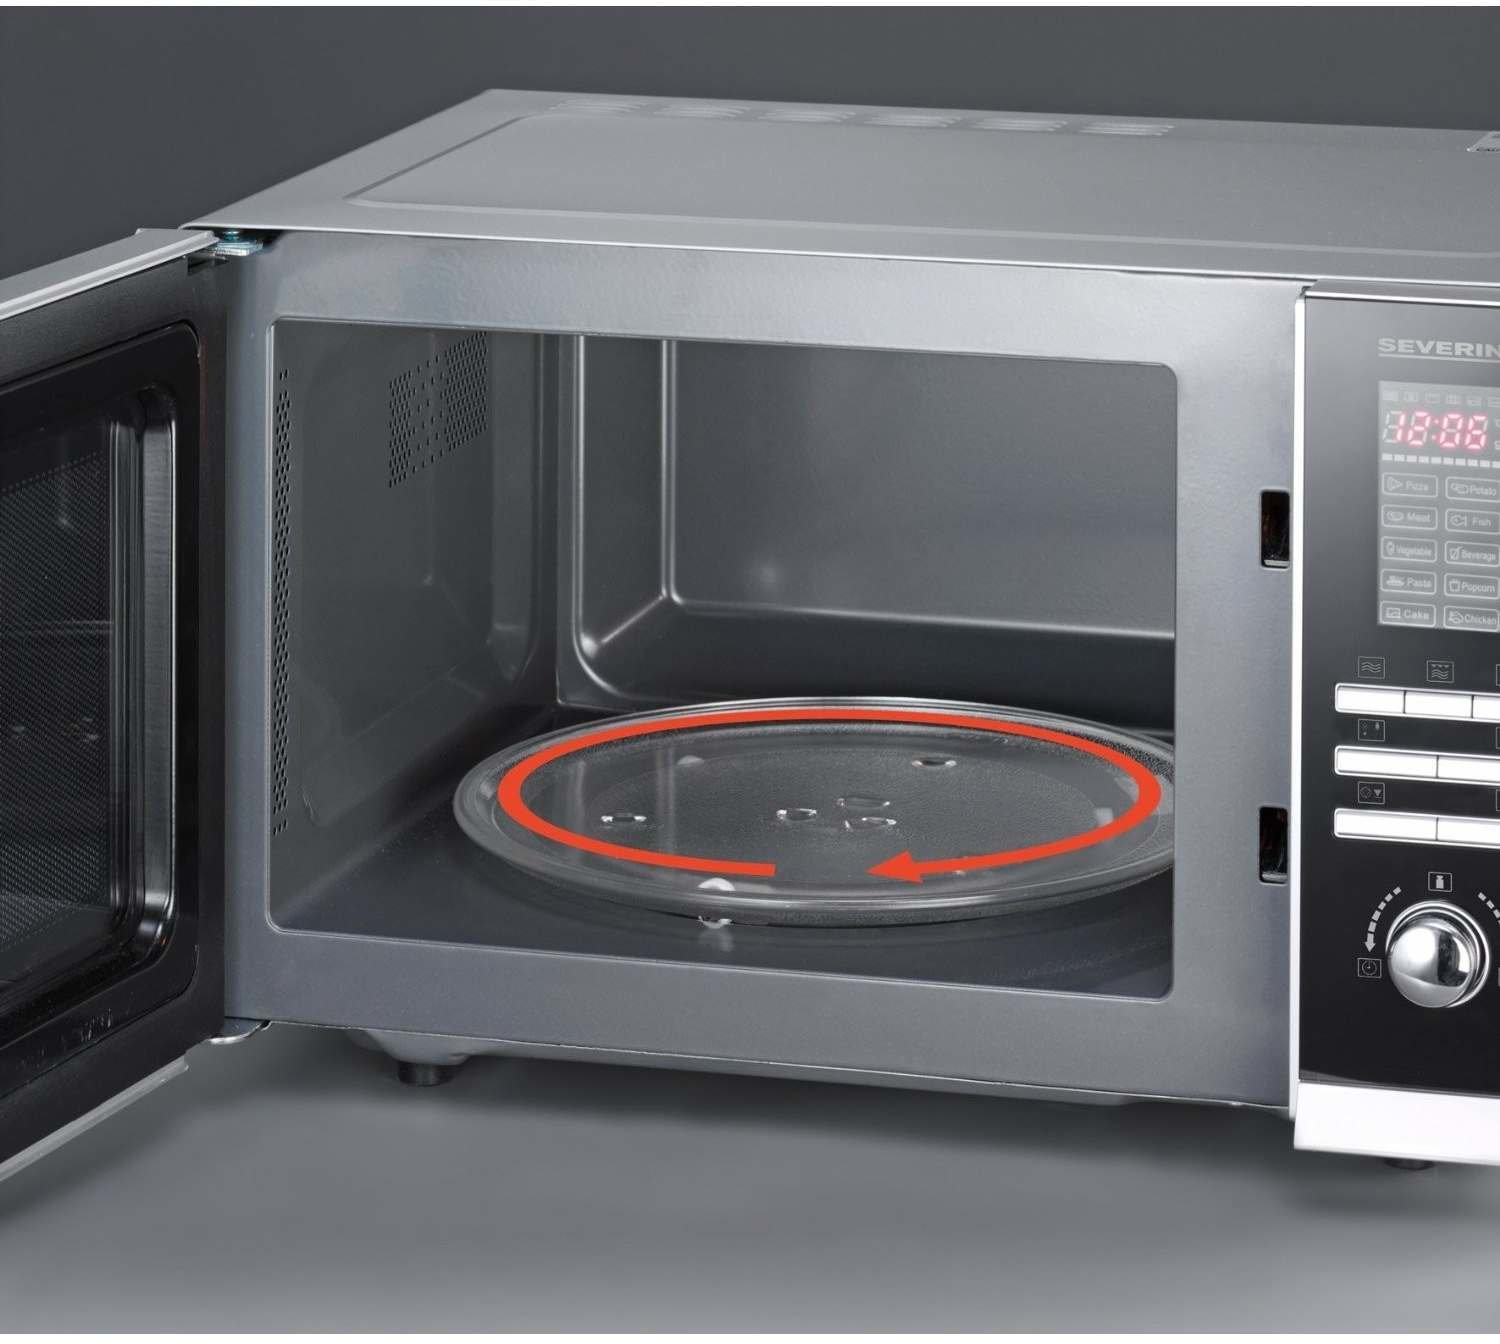 Severin mw 9675 test mikrowelle for Mikrowelle mit grill und backofen